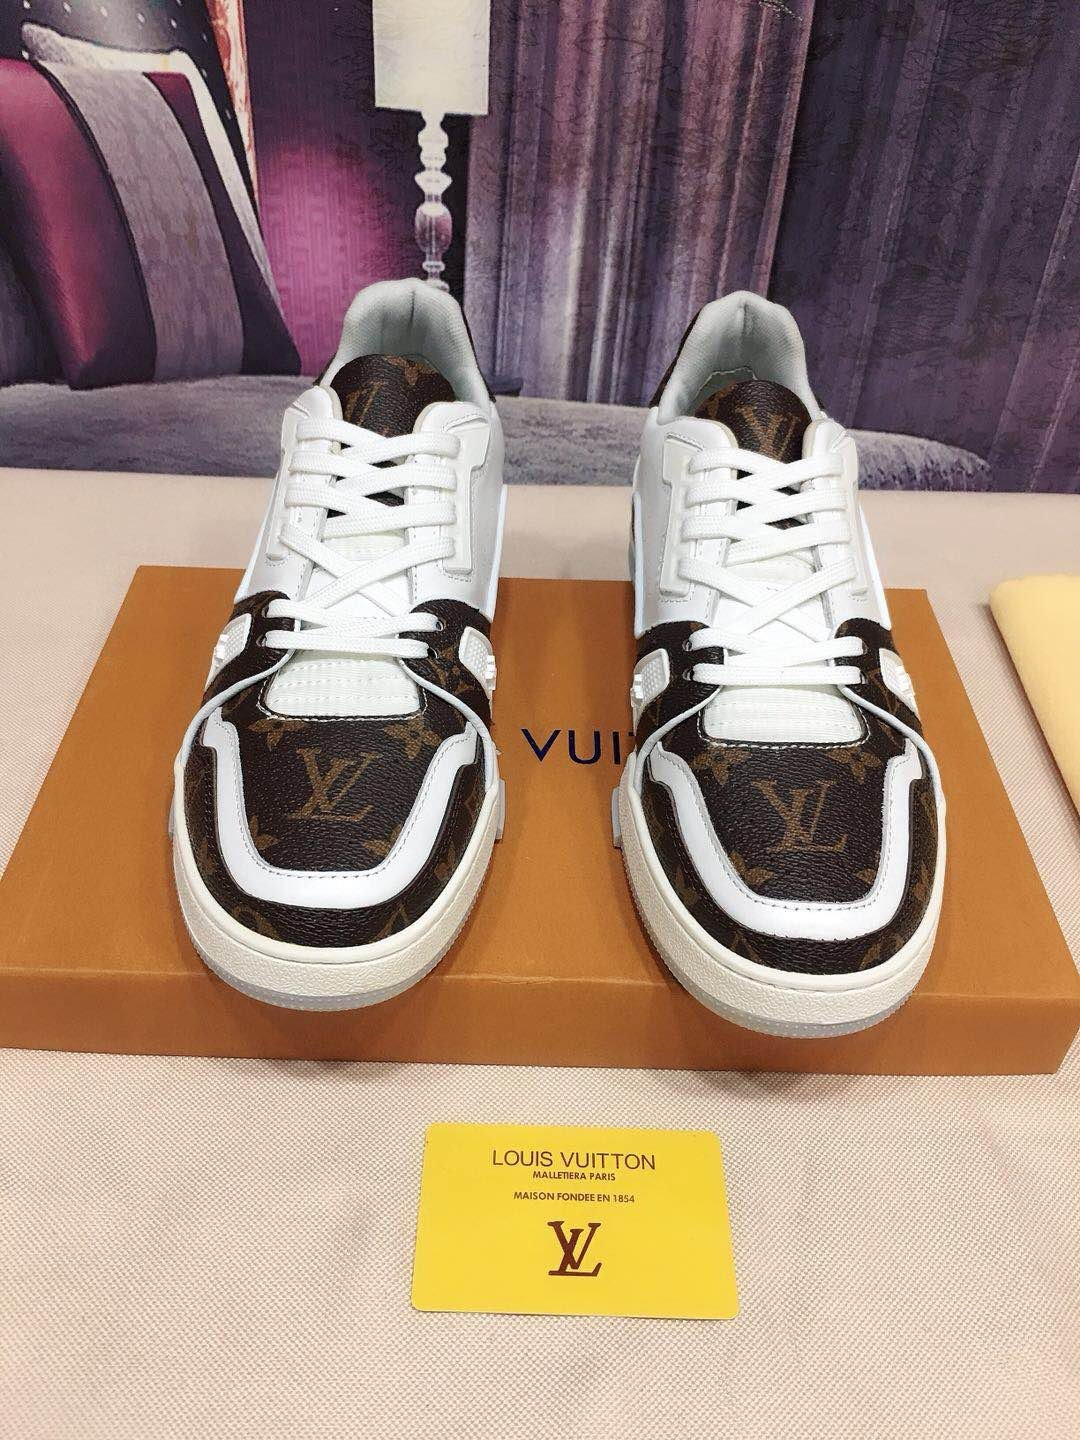 Replica Louis Vuitton Men Shoes 0002